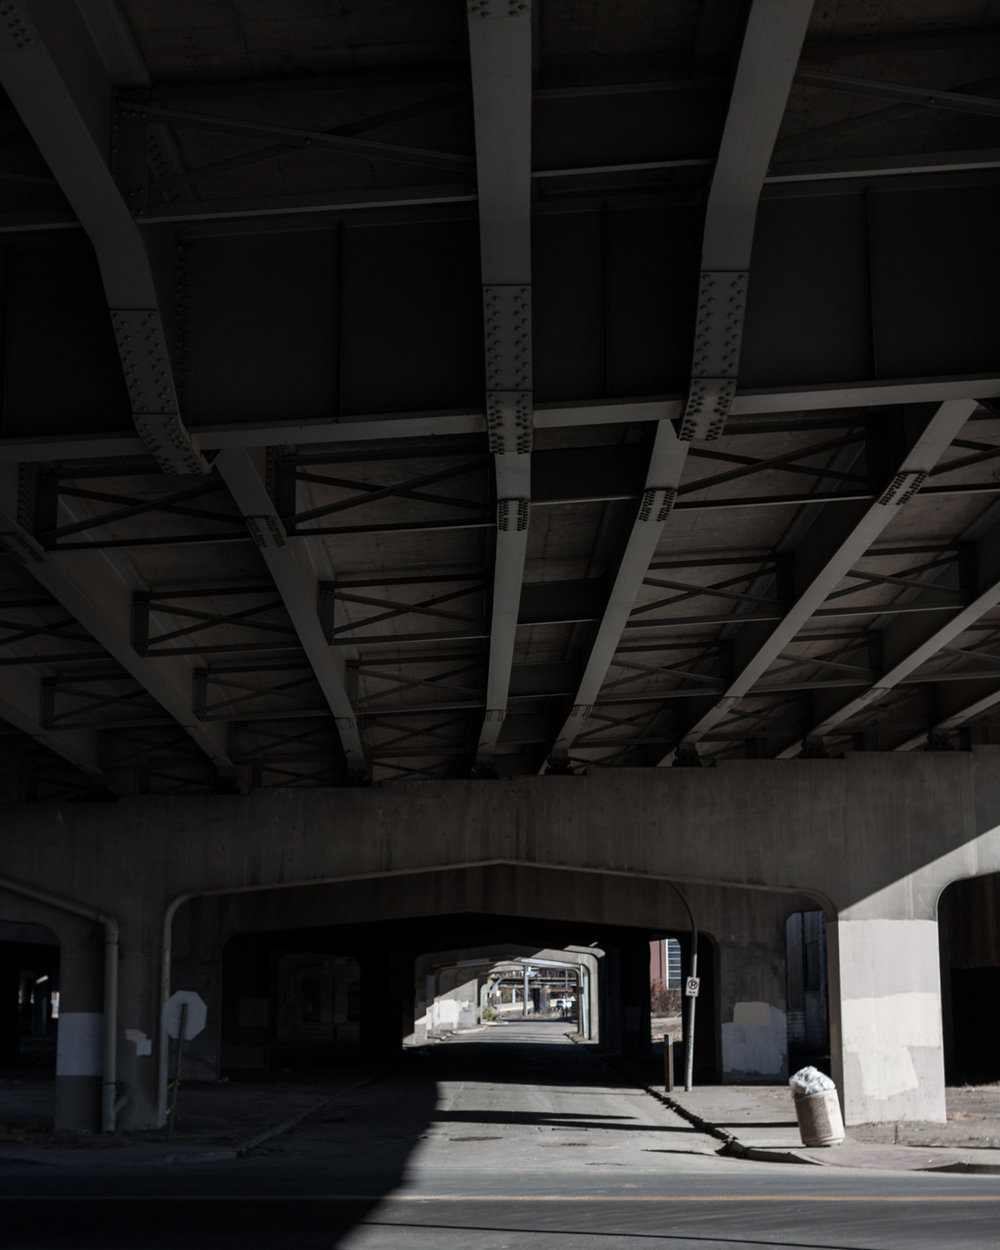 While there is not always a lot of color in a concrete environment, I reduced the saturation of what color there is in this image to emphasize the play of light and shadow under the overpass